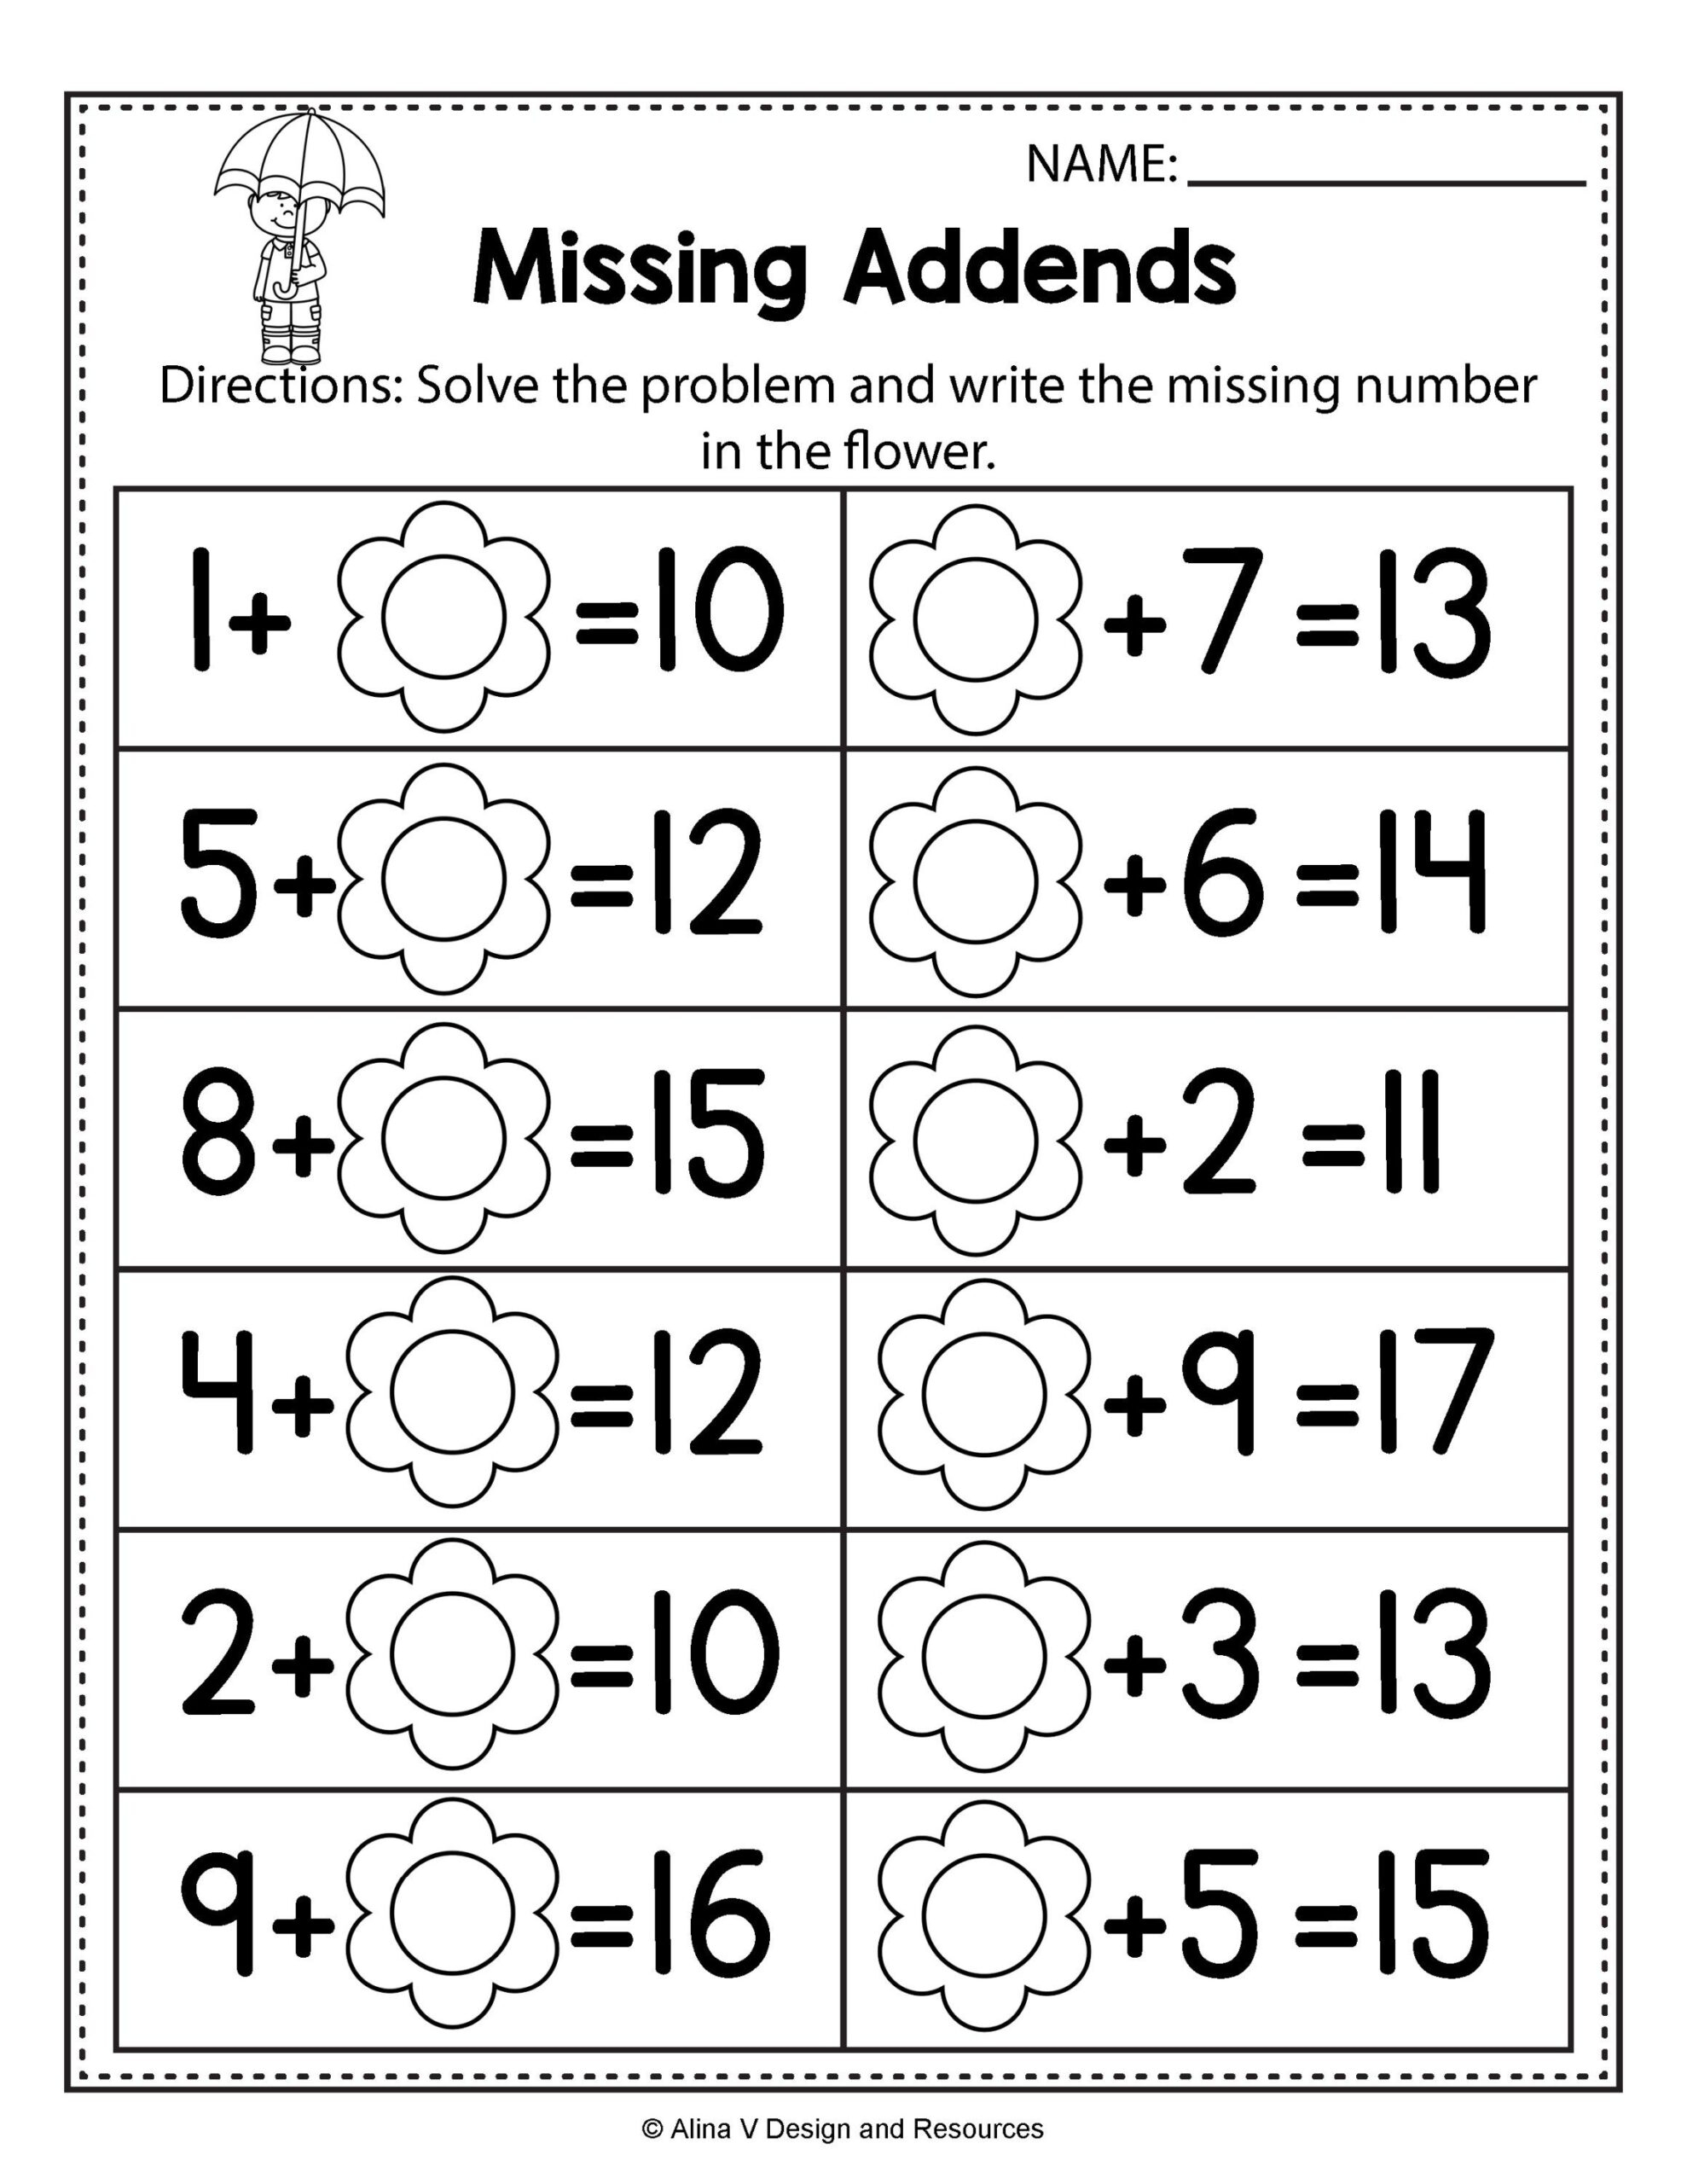 Stunning 2Nd Class Maths Worksheets Photo Ideas Monthly